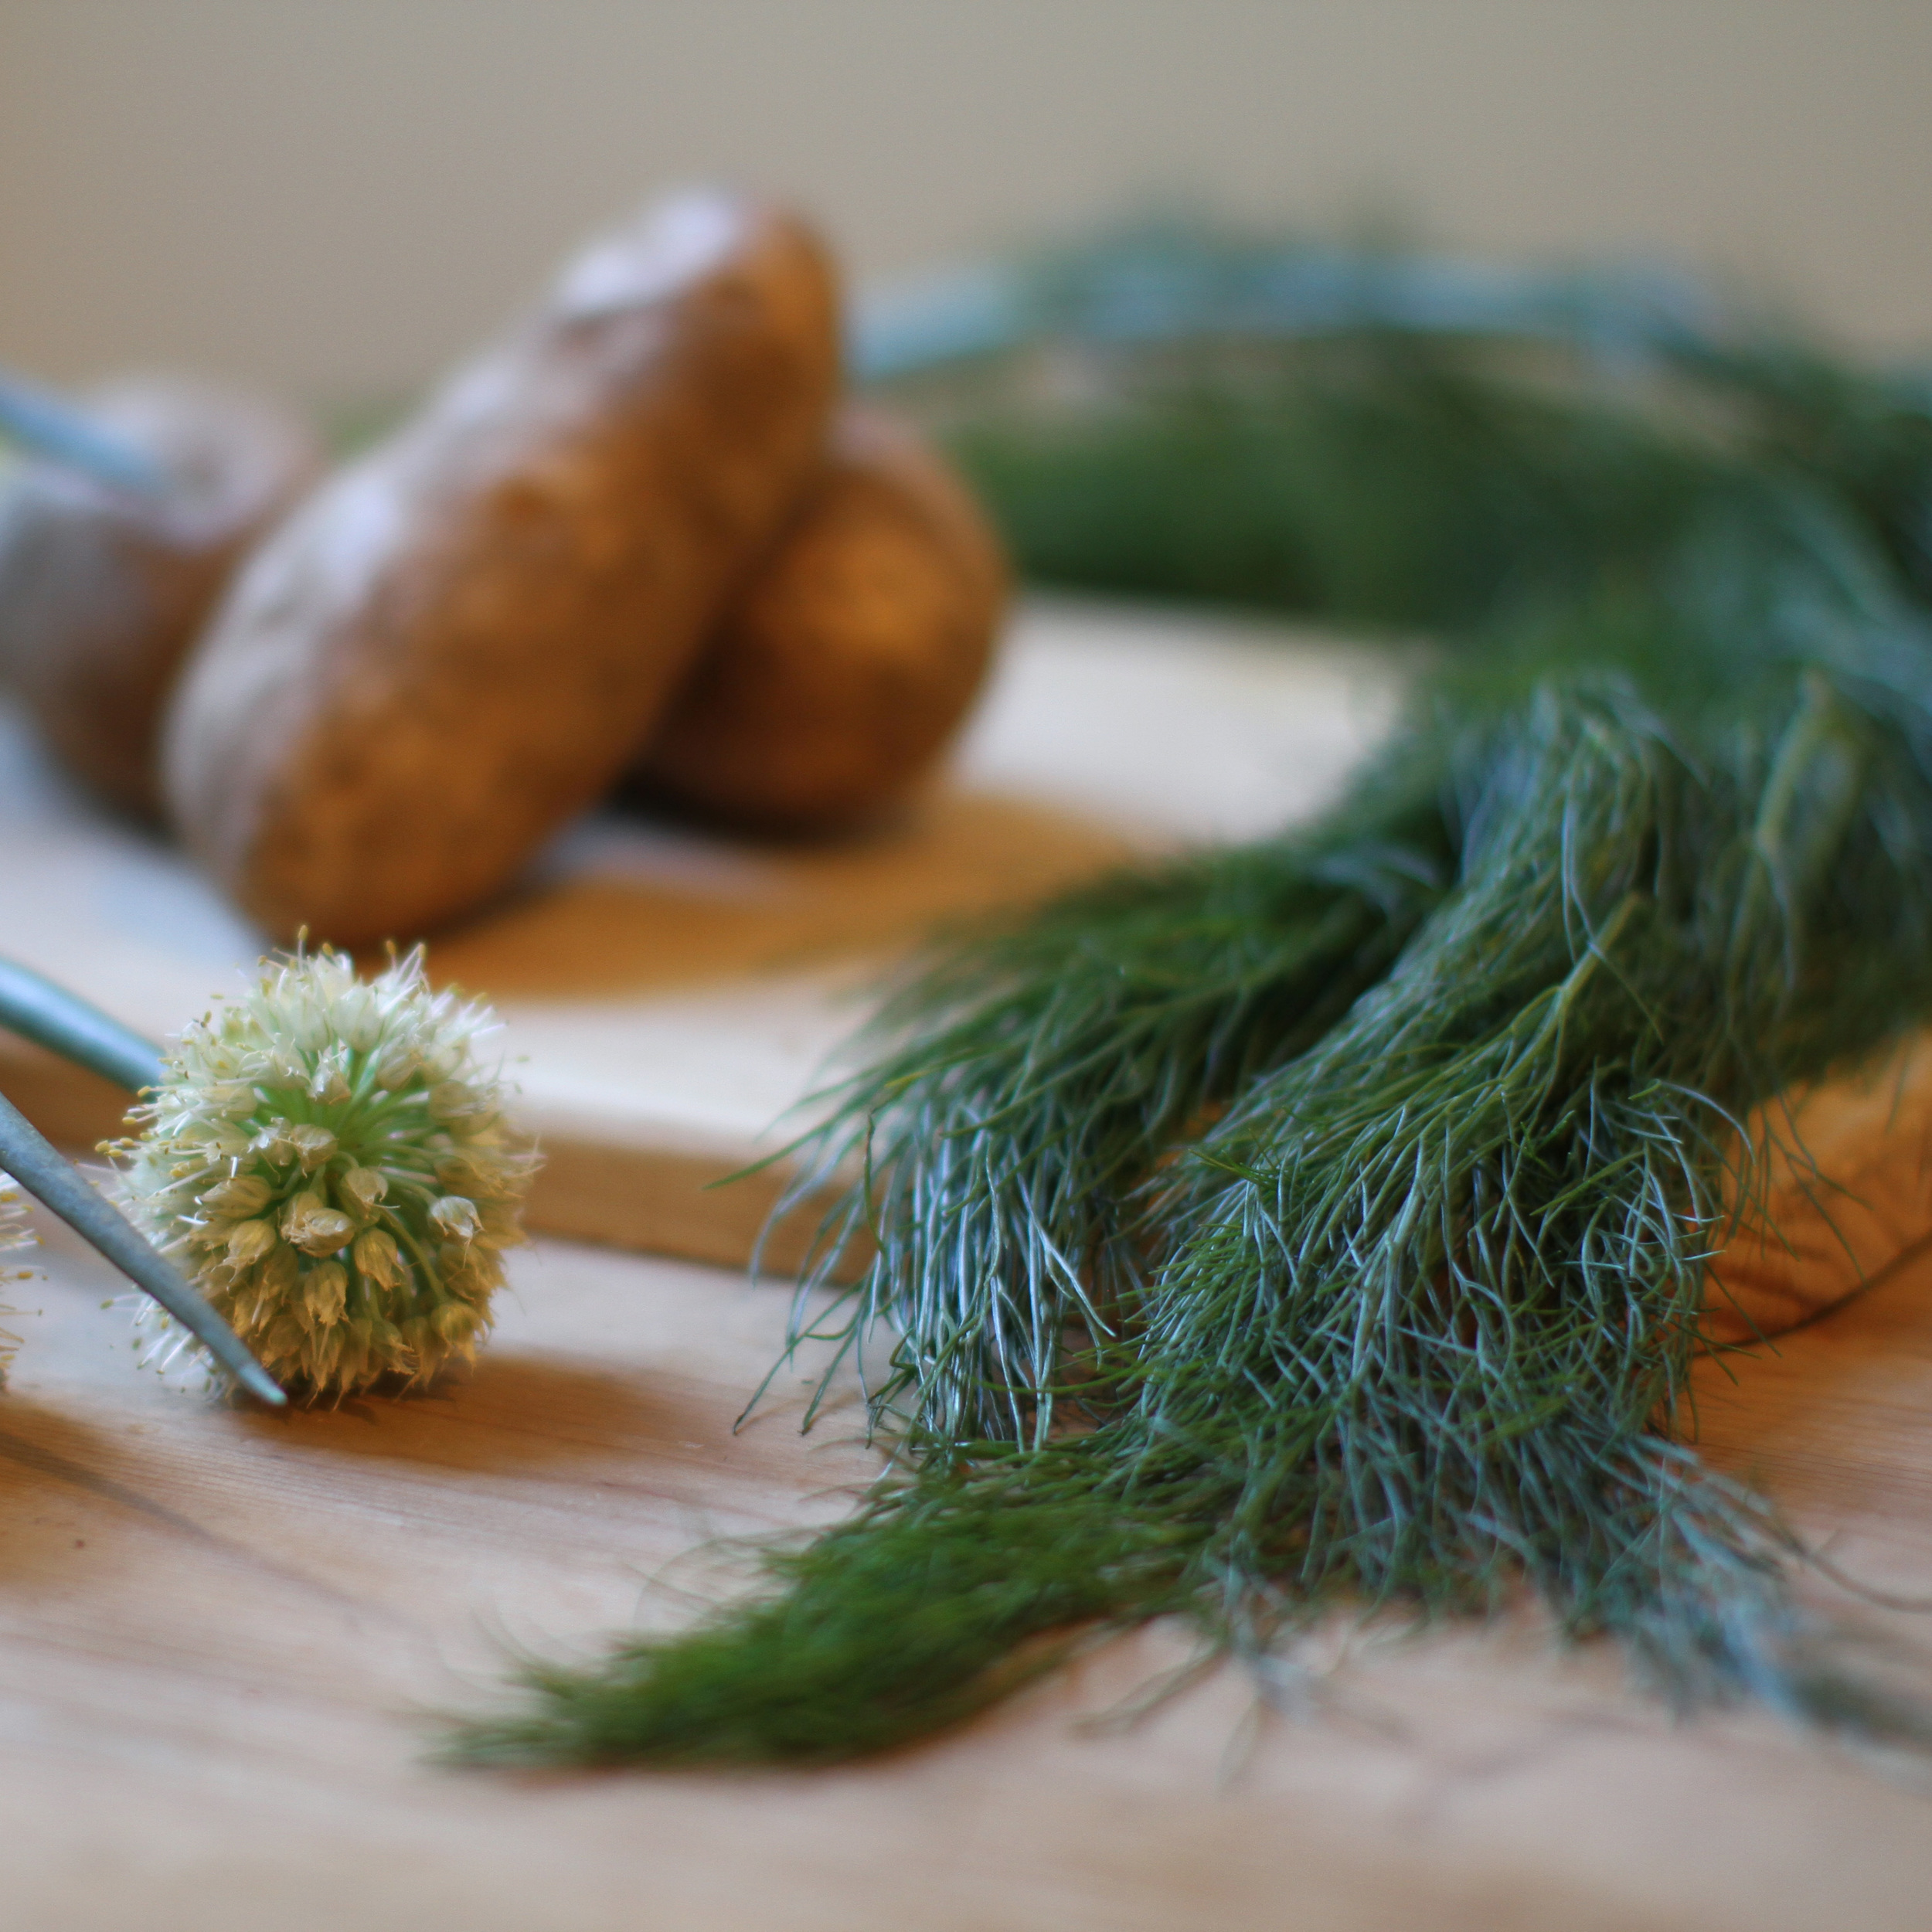 fennel_ingredients.jpg